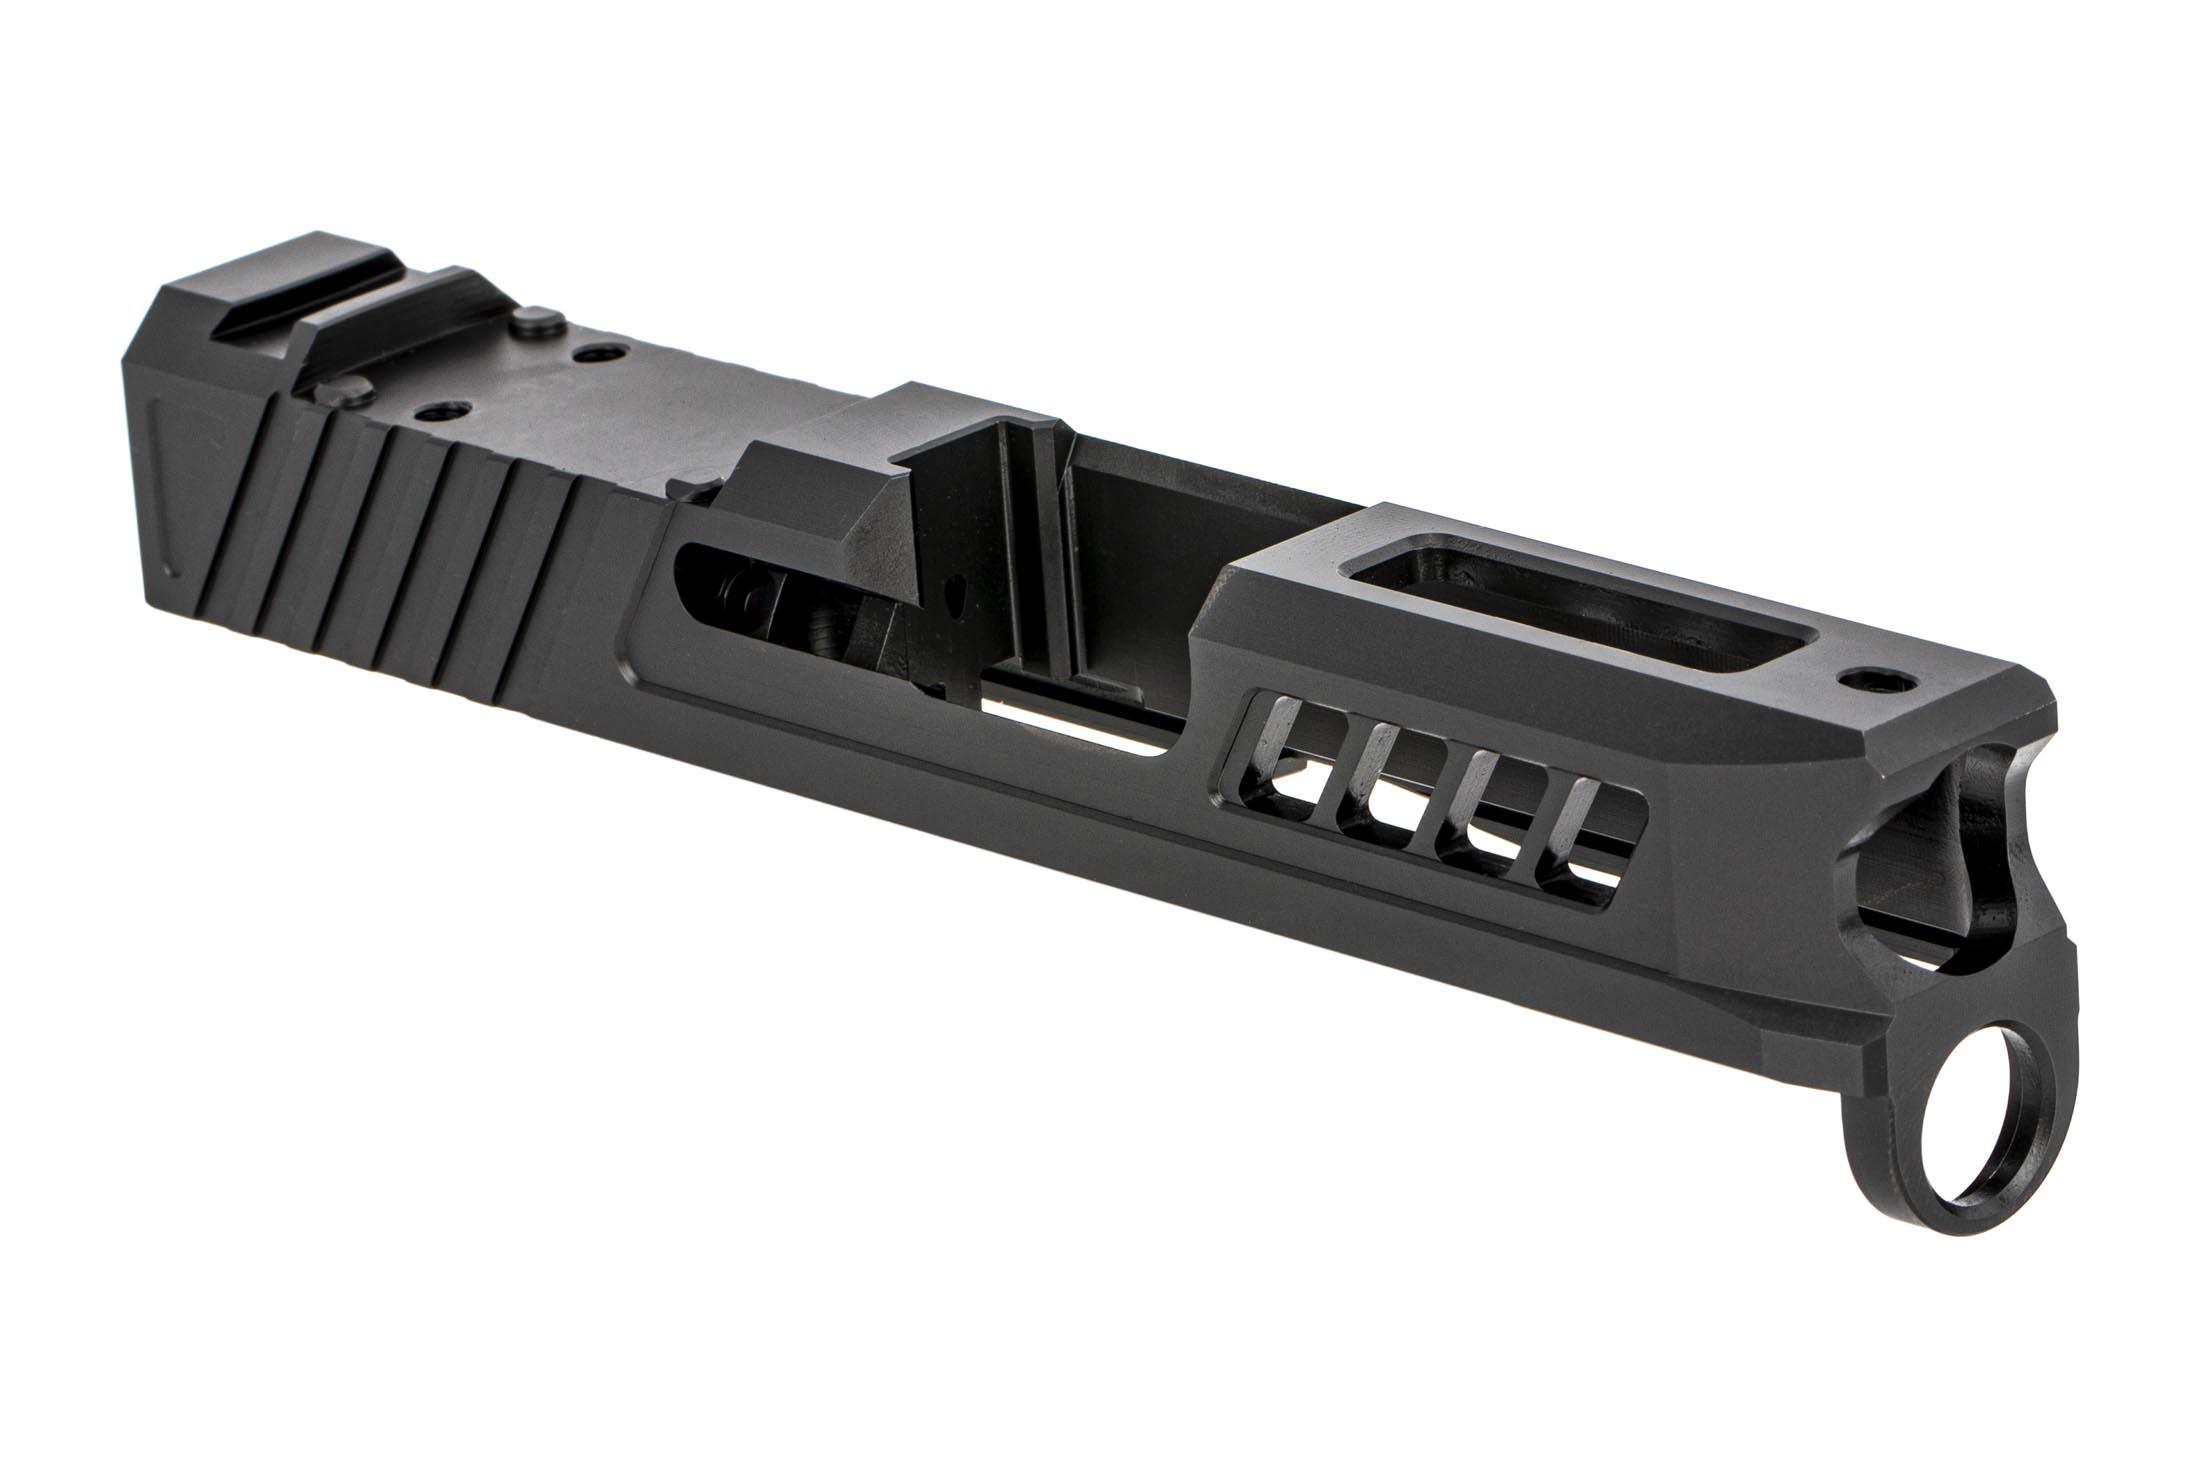 TRUE Precision Glock G43 / G43X slide with DLC Black finish and RMSc cut features scalloped muzzle and angled slide serrations.